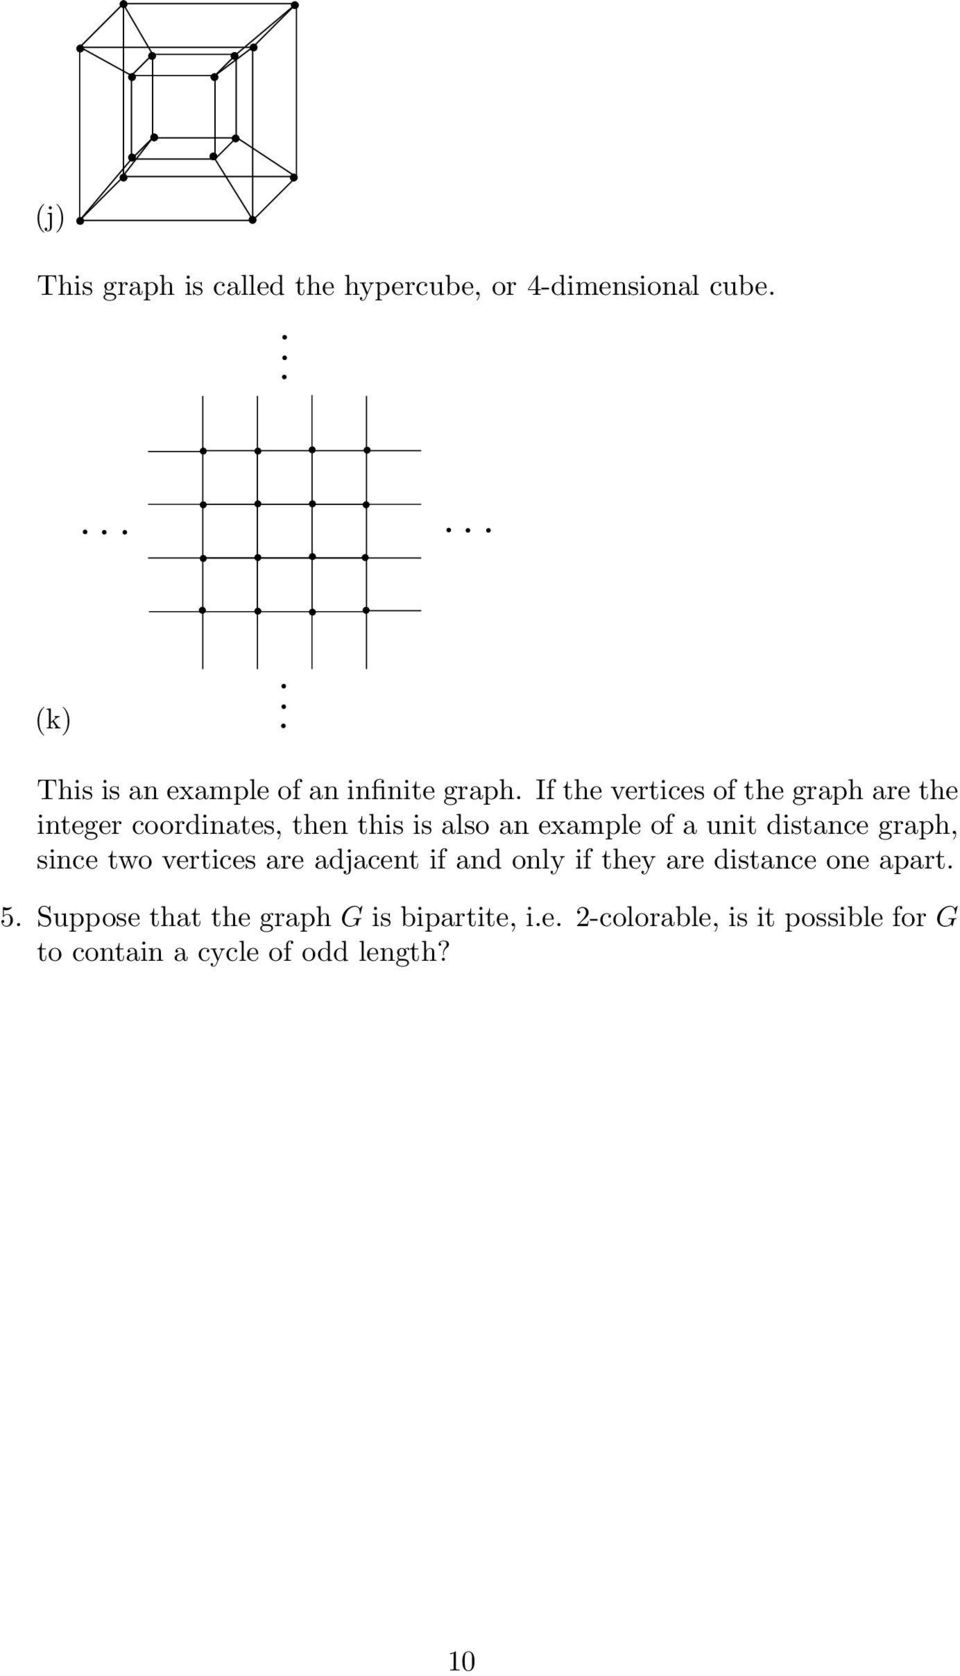 If the vertices of the graph are the integer coordinates, then this is also an example of a unit